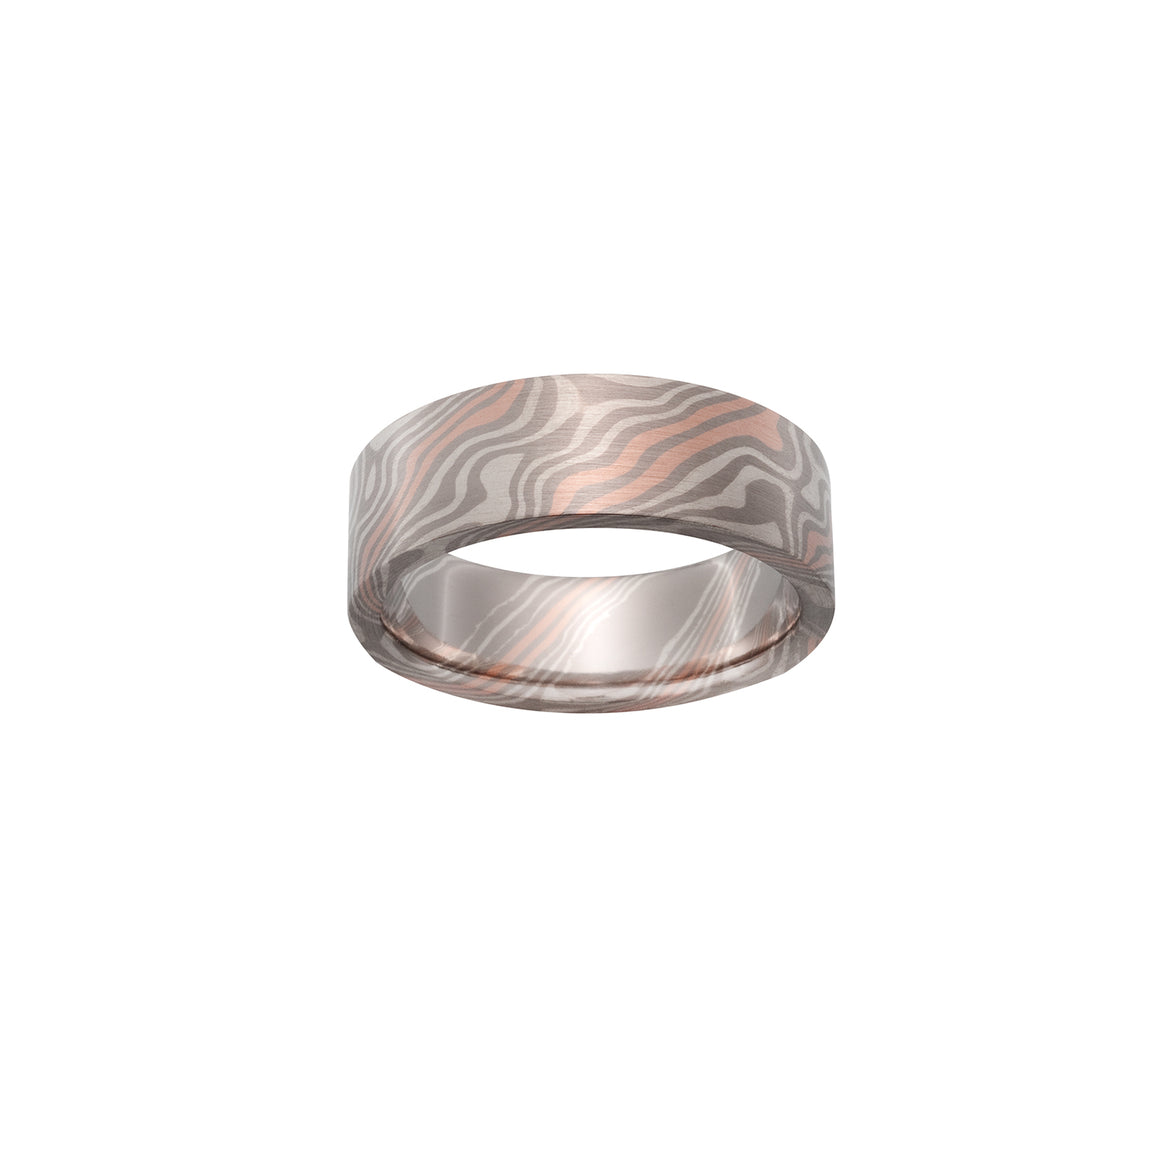 Chris Ploof Beech Pd500, 14K Red Gold and Silver Mokume Ring